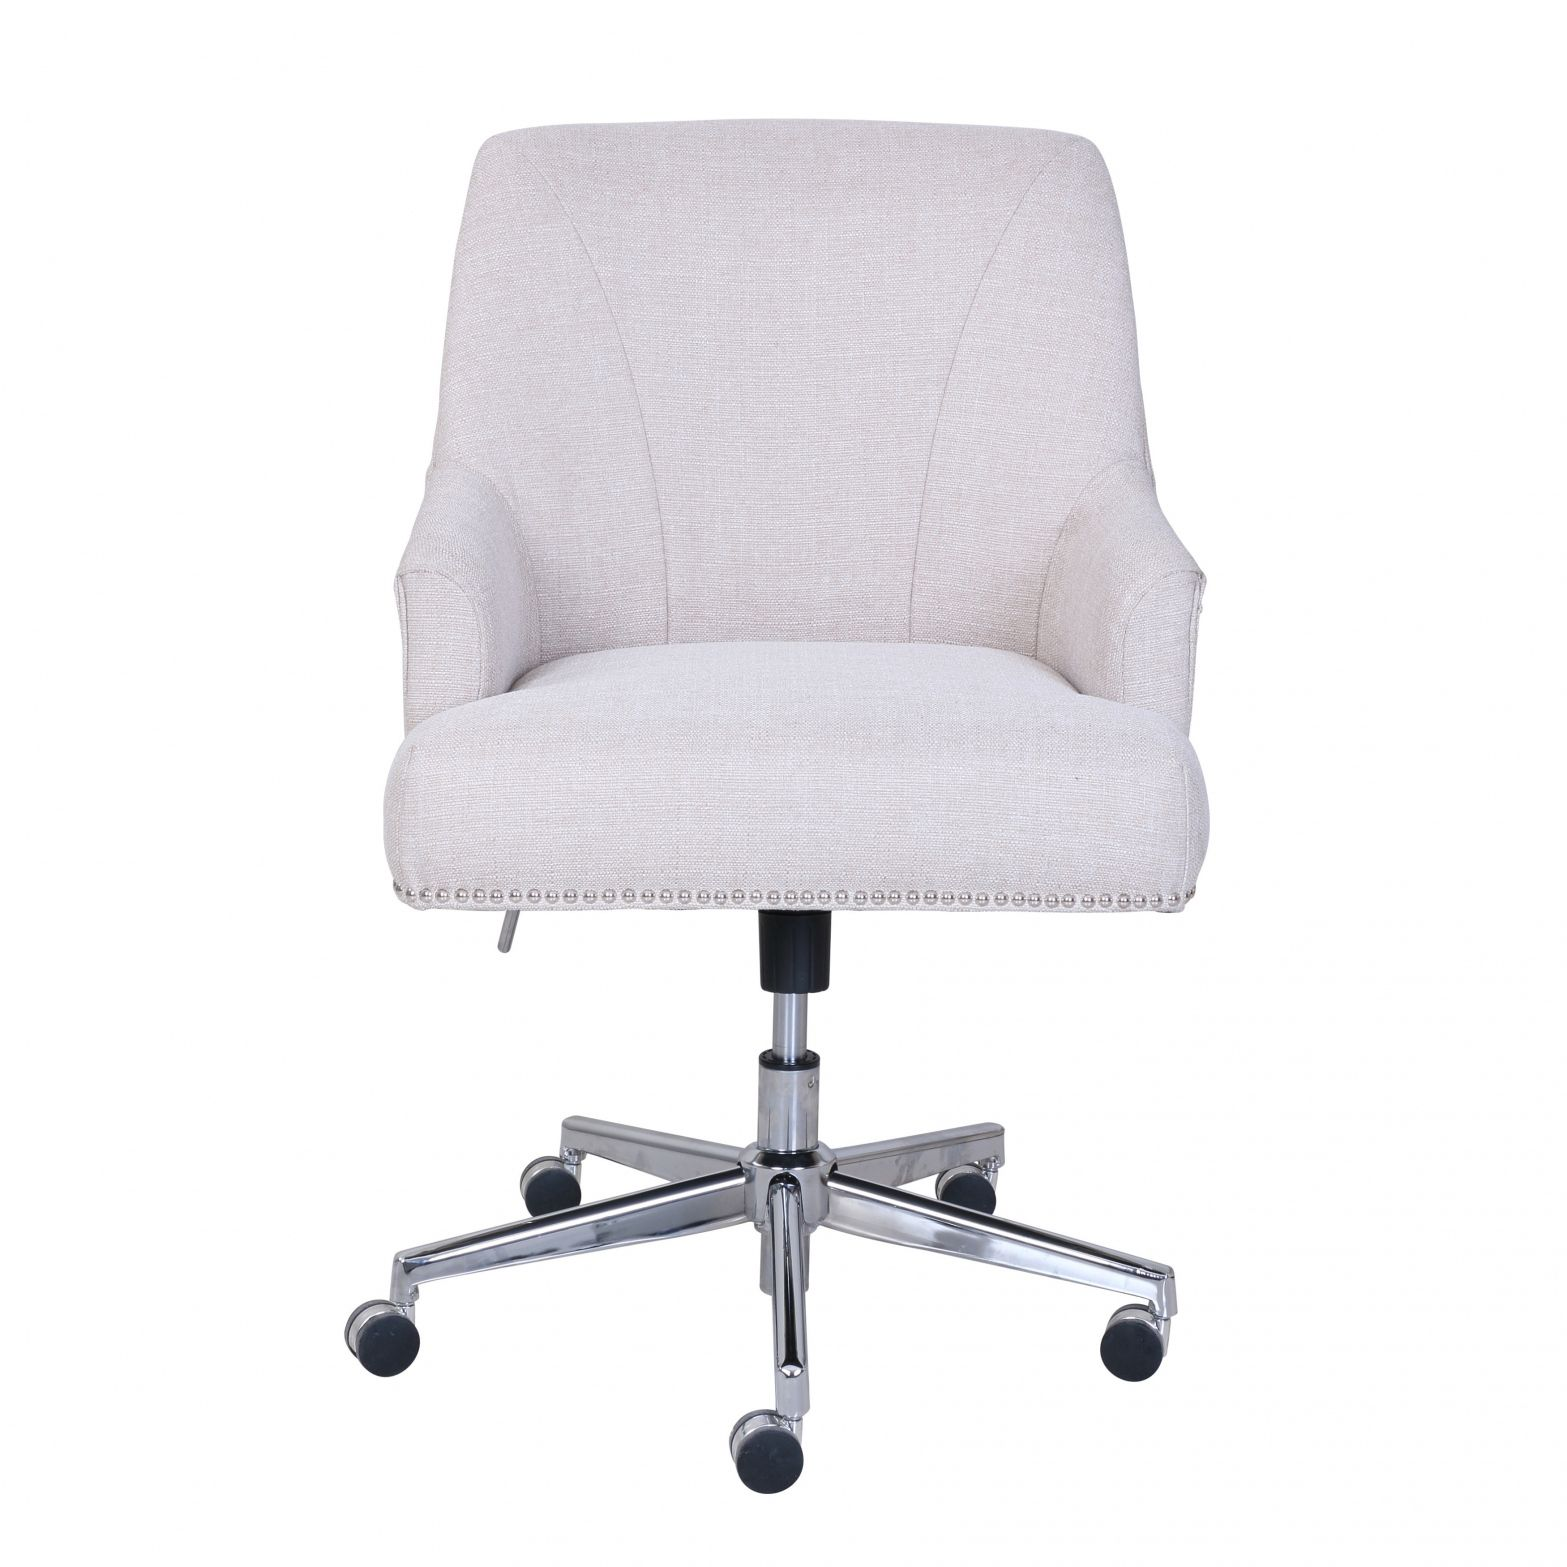 50 Beige Office Chair Contemporary Home Furniture Check More At Http